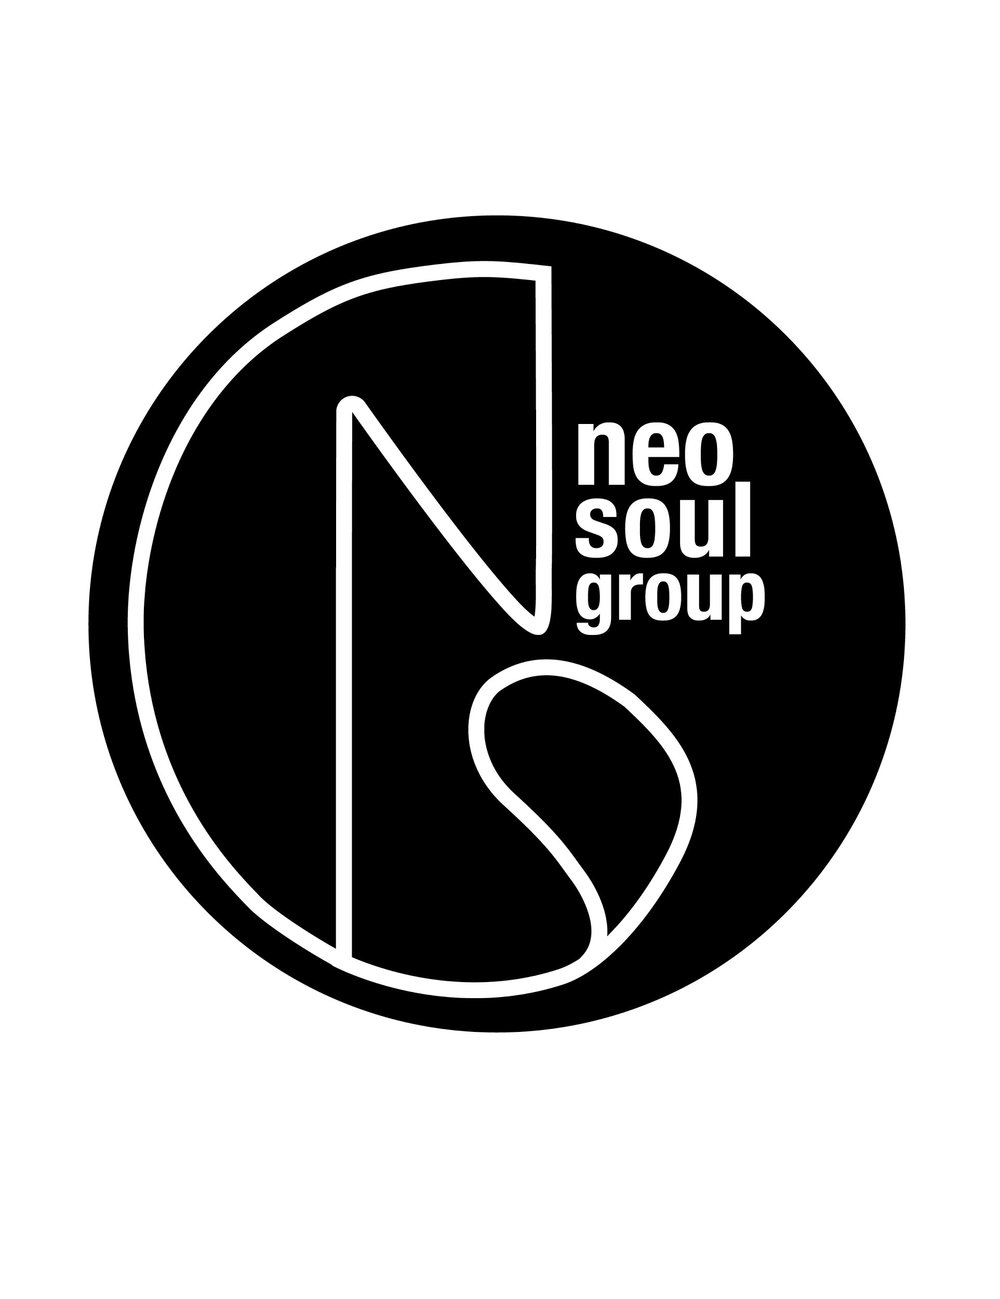 Neo Soul Group logo_Malcolm Richardson.jpg